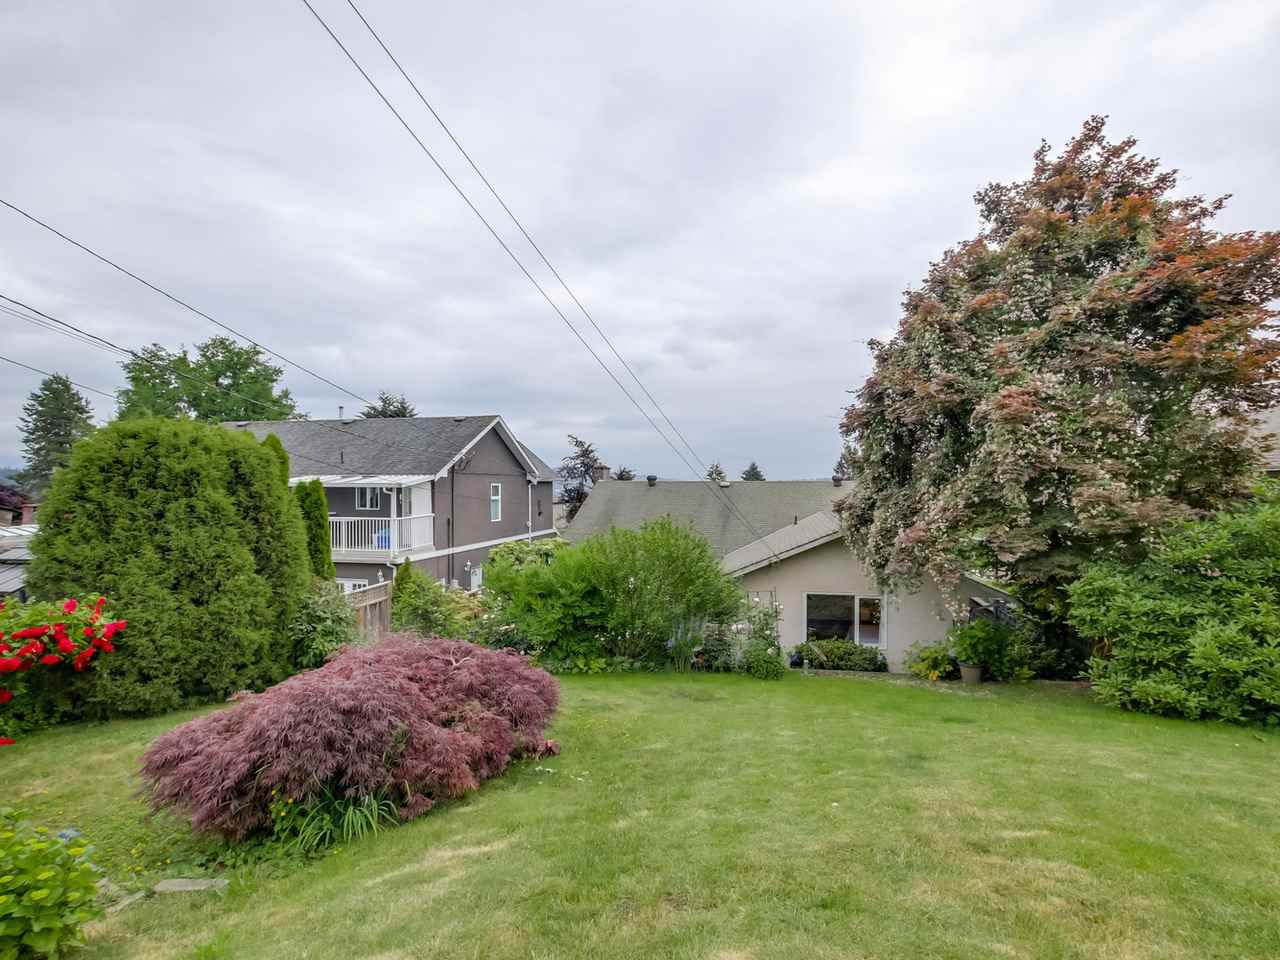 Photo 16: Photos: 1014 CALVERHALL Street in North Vancouver: Calverhall House for sale : MLS®# R2090205